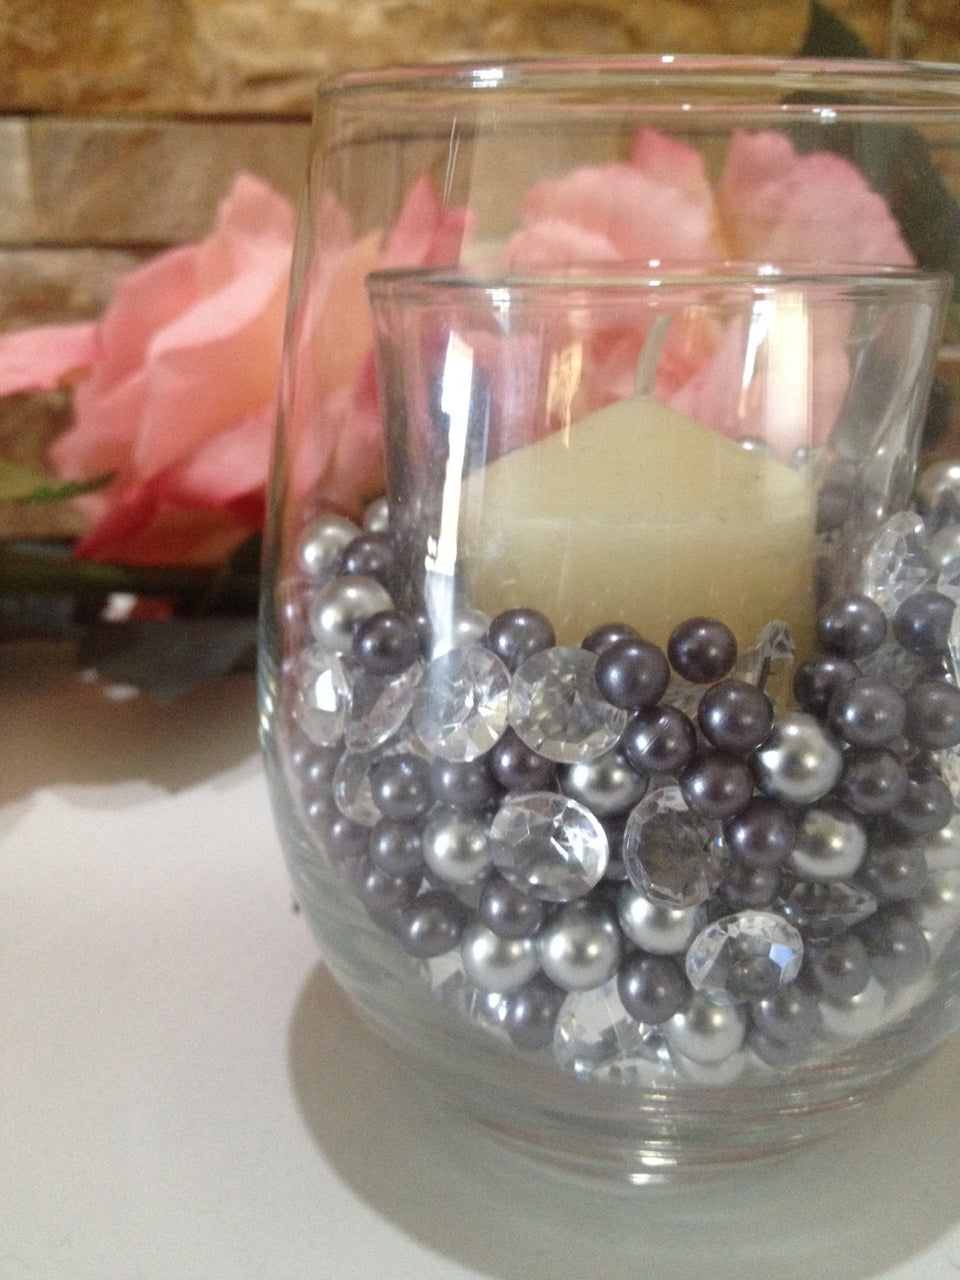 Diamonds And Pearls Table Scatter, Light Silver & Gray Pearls, Clear Diamond Table Confetti, Vase Filler Pearls For Candles, Wine glass